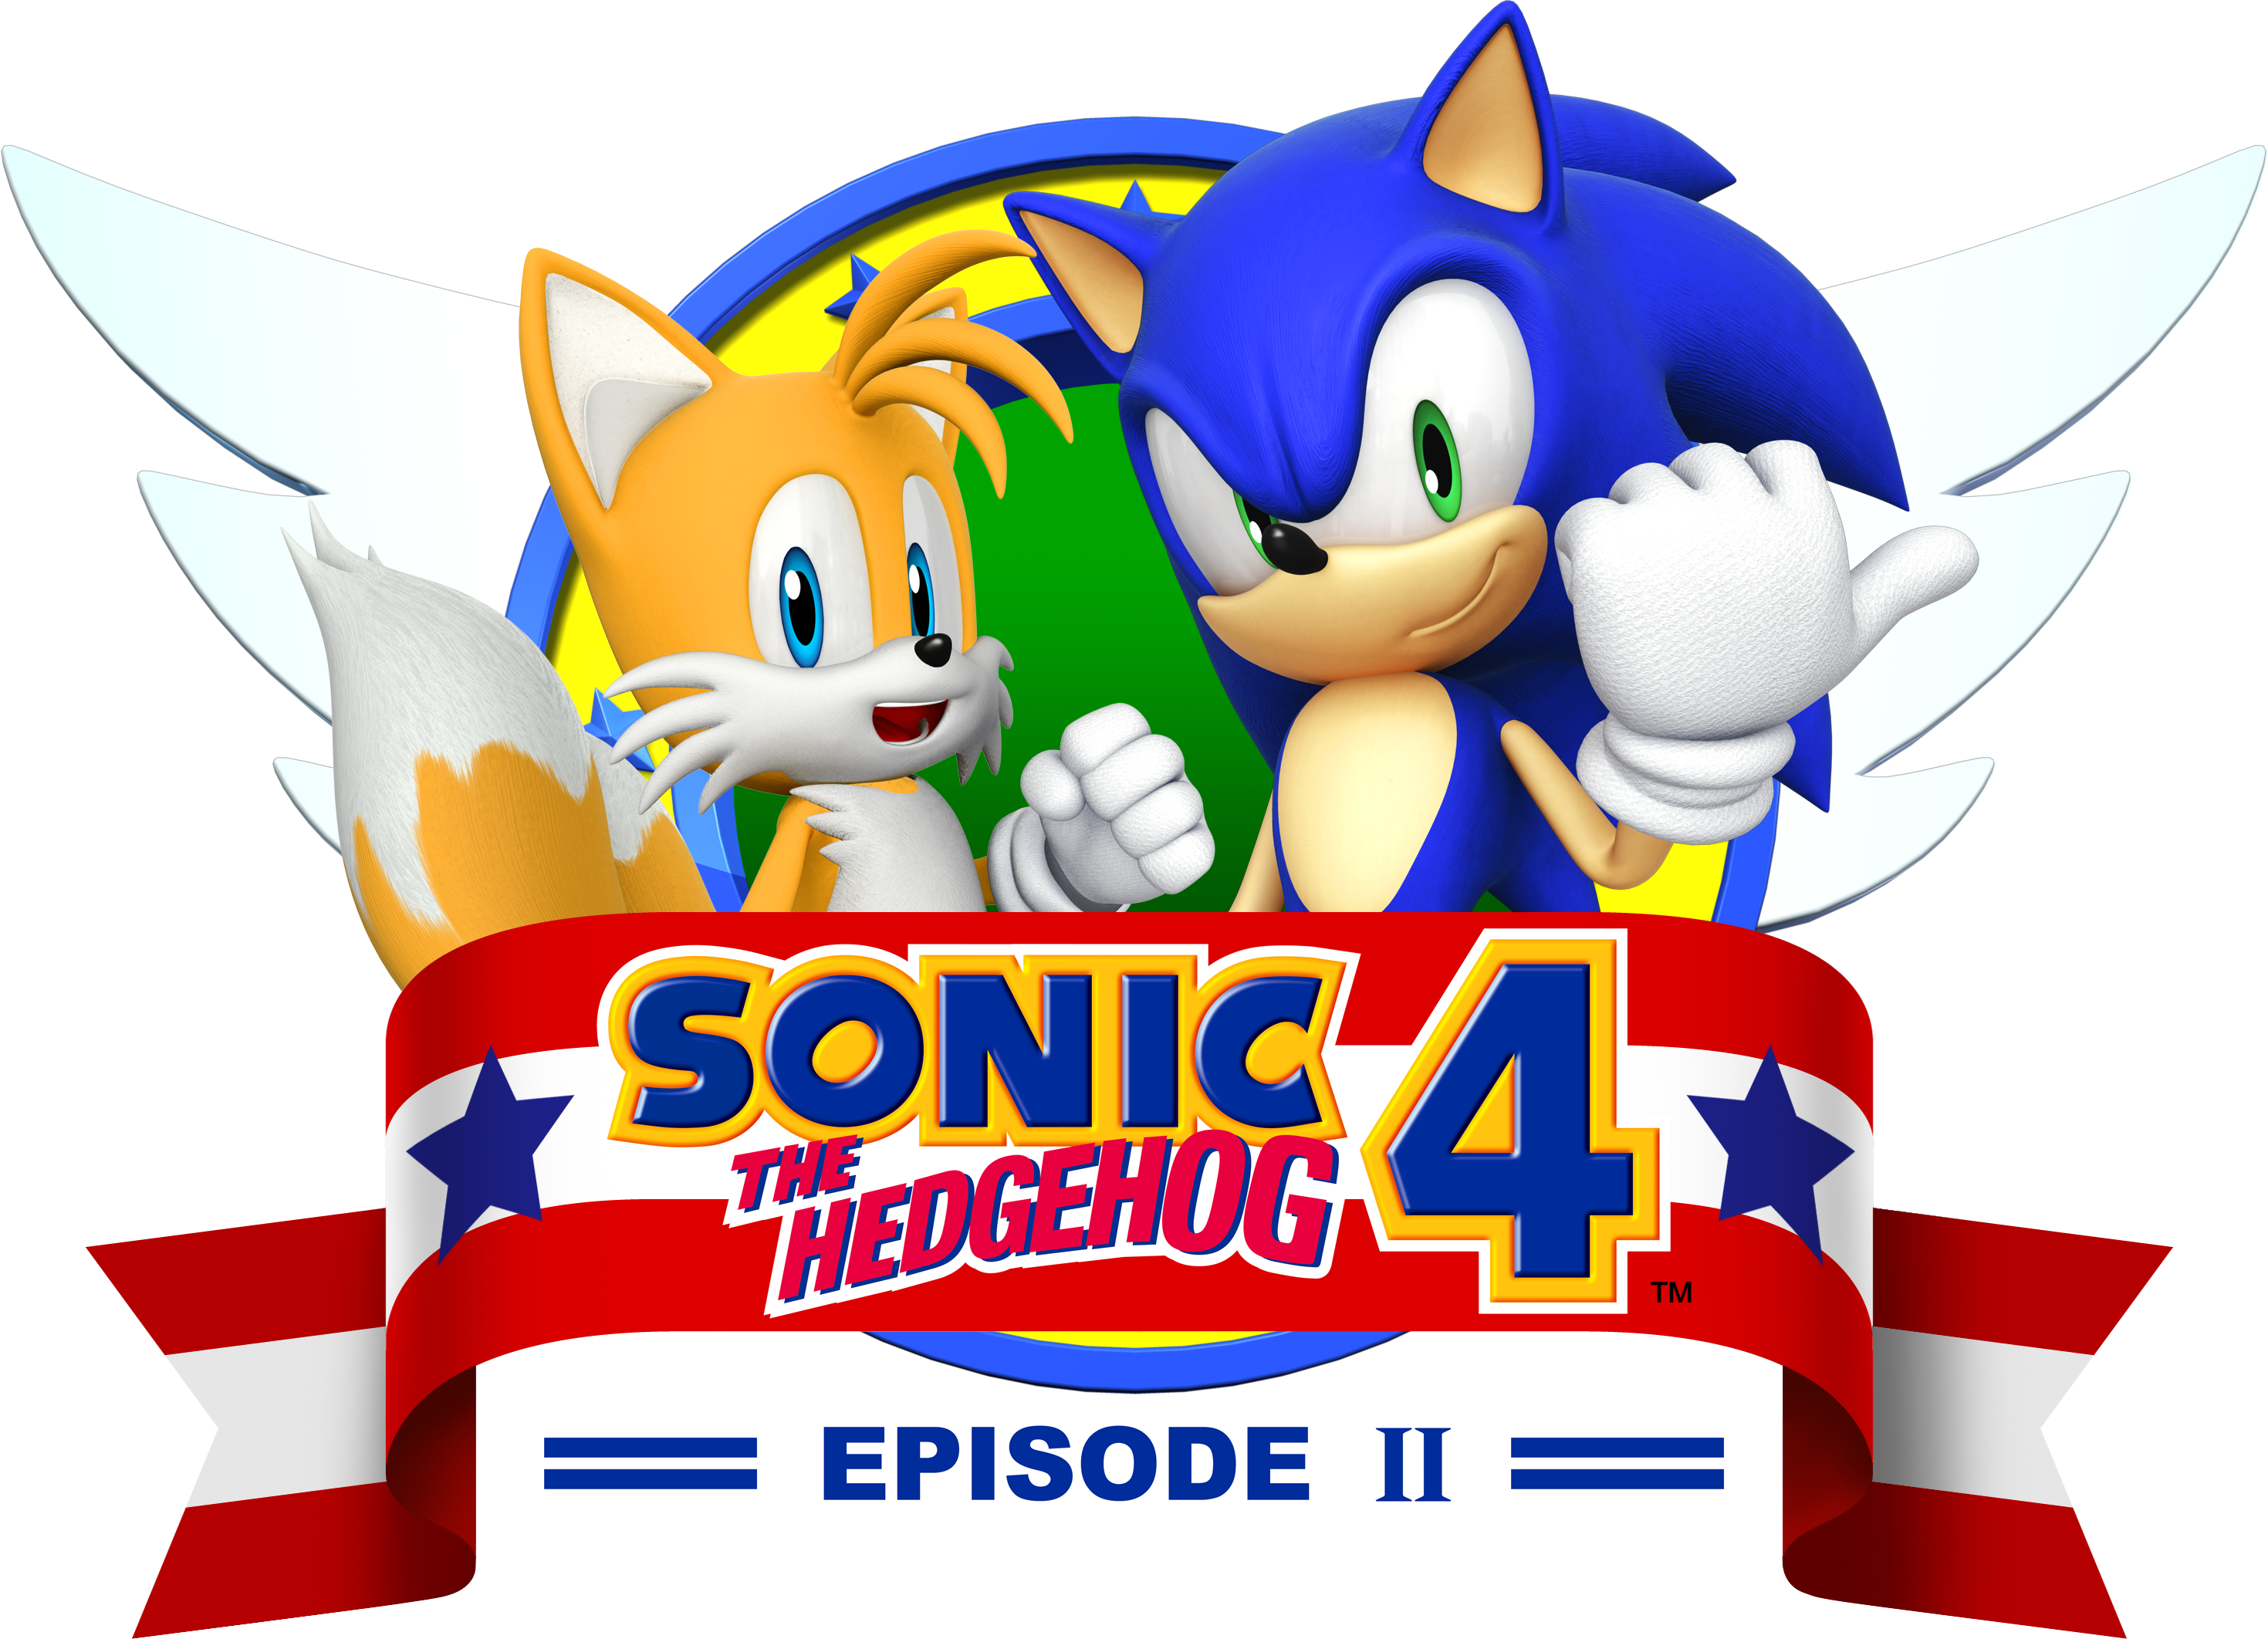 sonic the hedgehog 4 episode ii sonic news network fandom powered by wikia. Black Bedroom Furniture Sets. Home Design Ideas